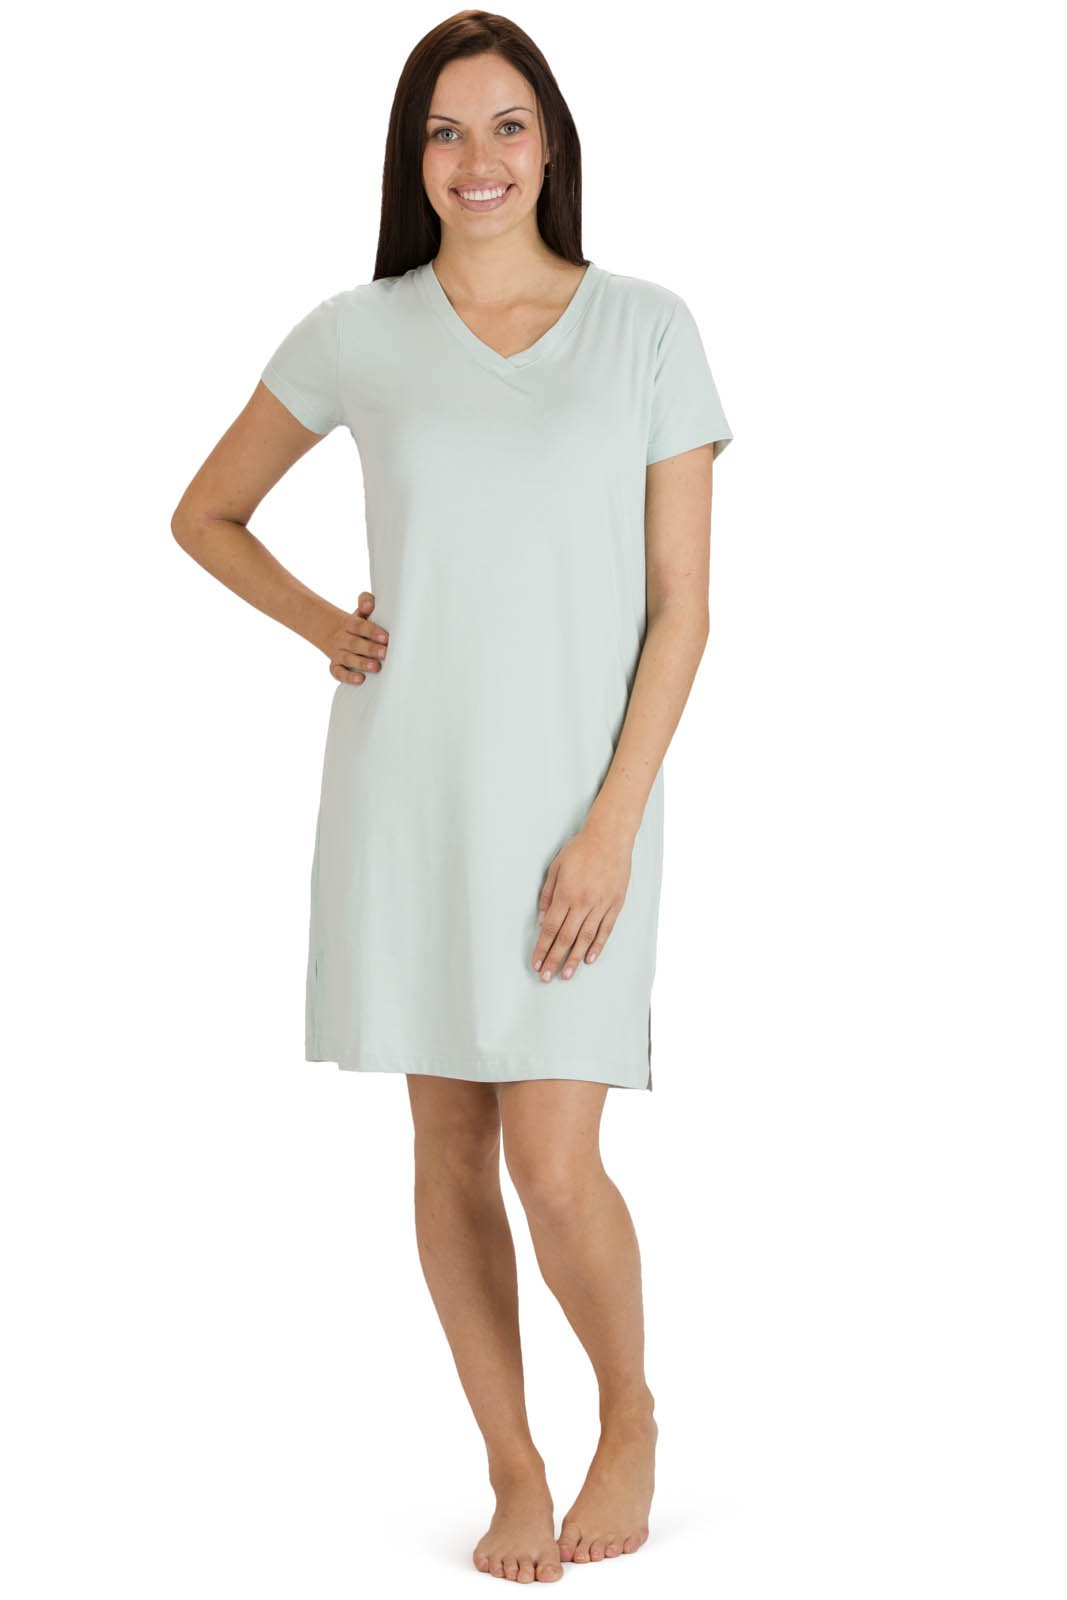 Fishers Finery Women's Tranquil Dreams V Neck Nightshirt Comfort Fit, Sea Glass, X-Large